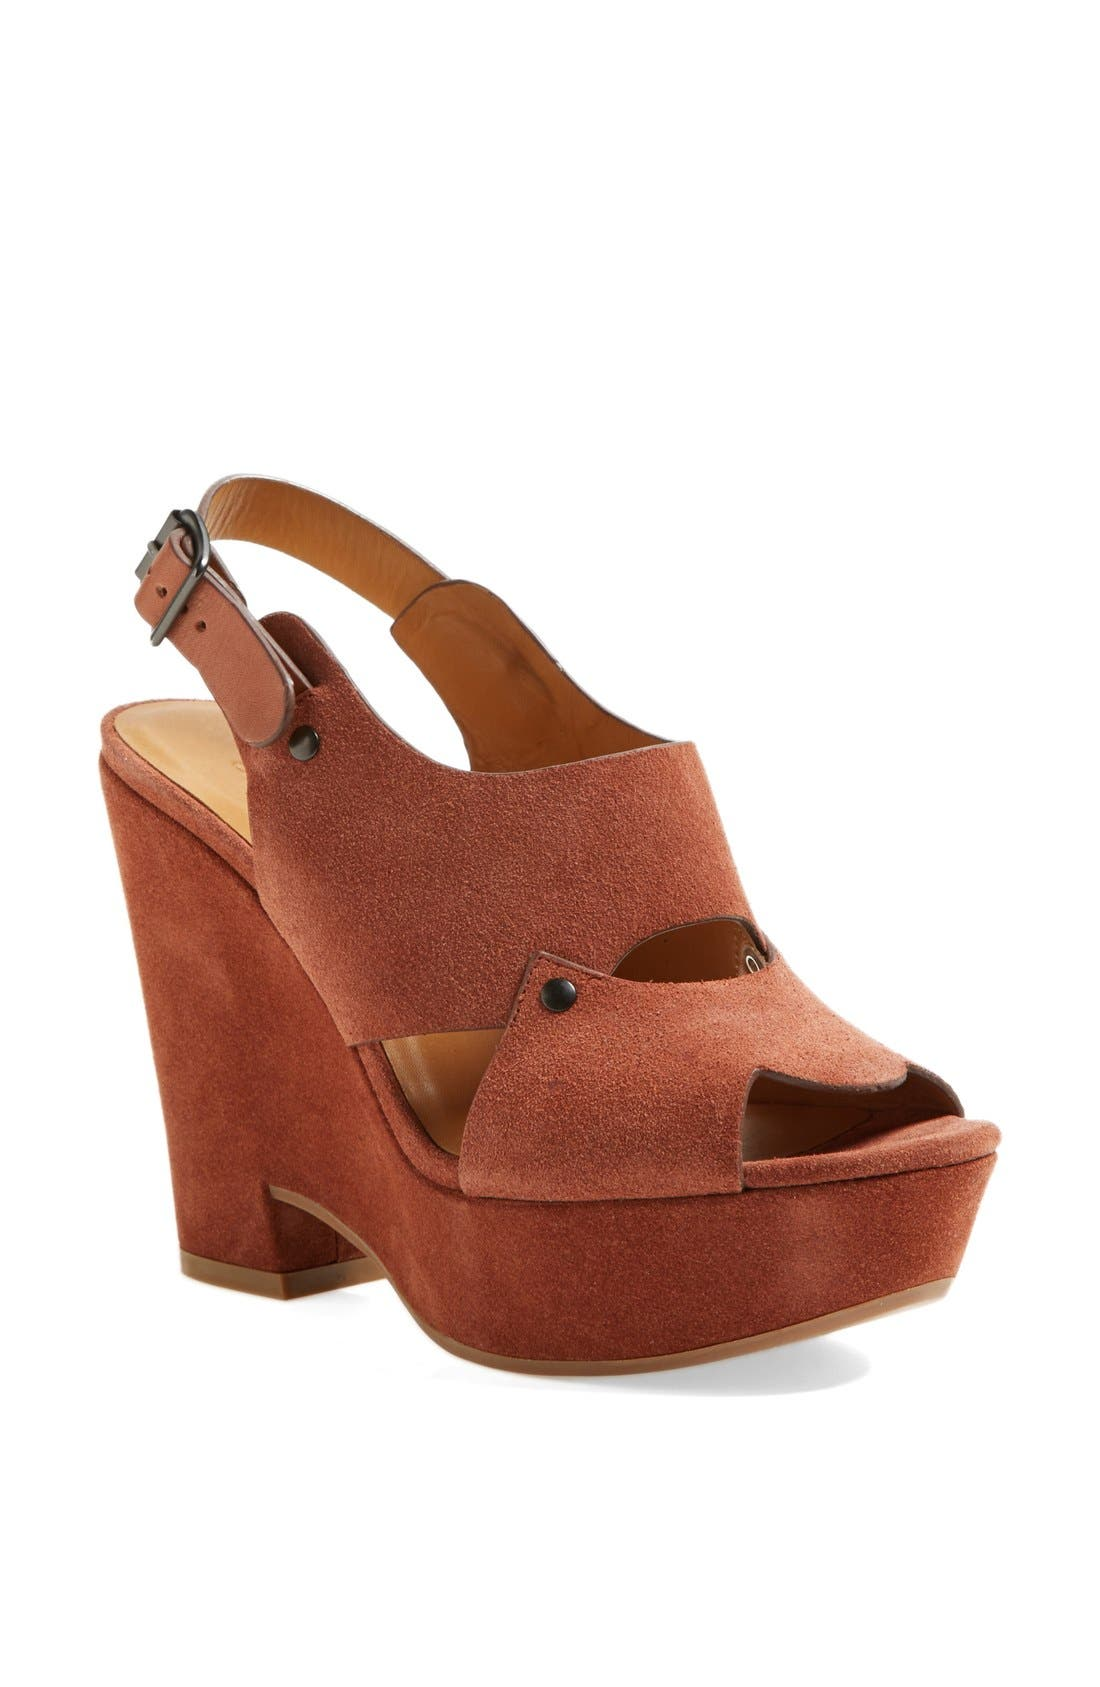 Alternate Image 1 Selected - See by Chloé 'Eva' Cutout Slingback Wedge Sandal